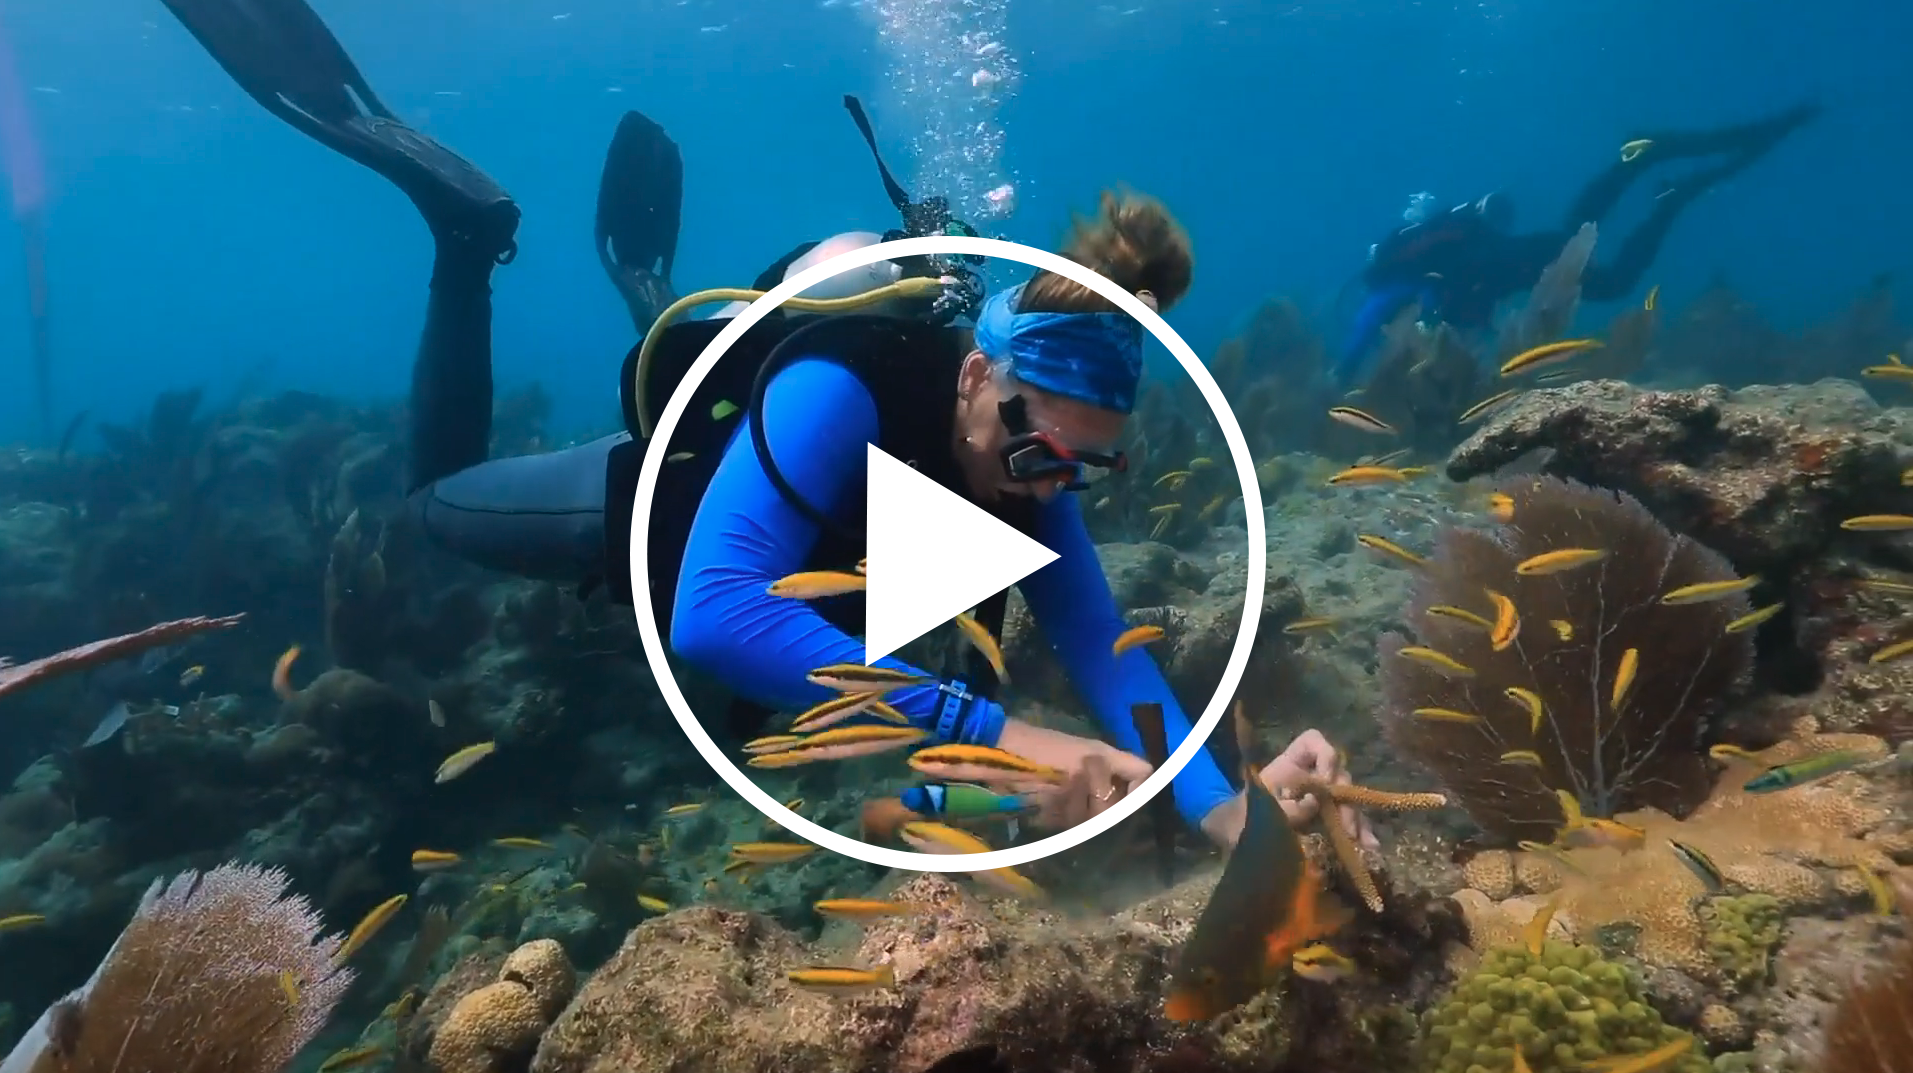 [VIDEO] What's happening to our coral reefs?